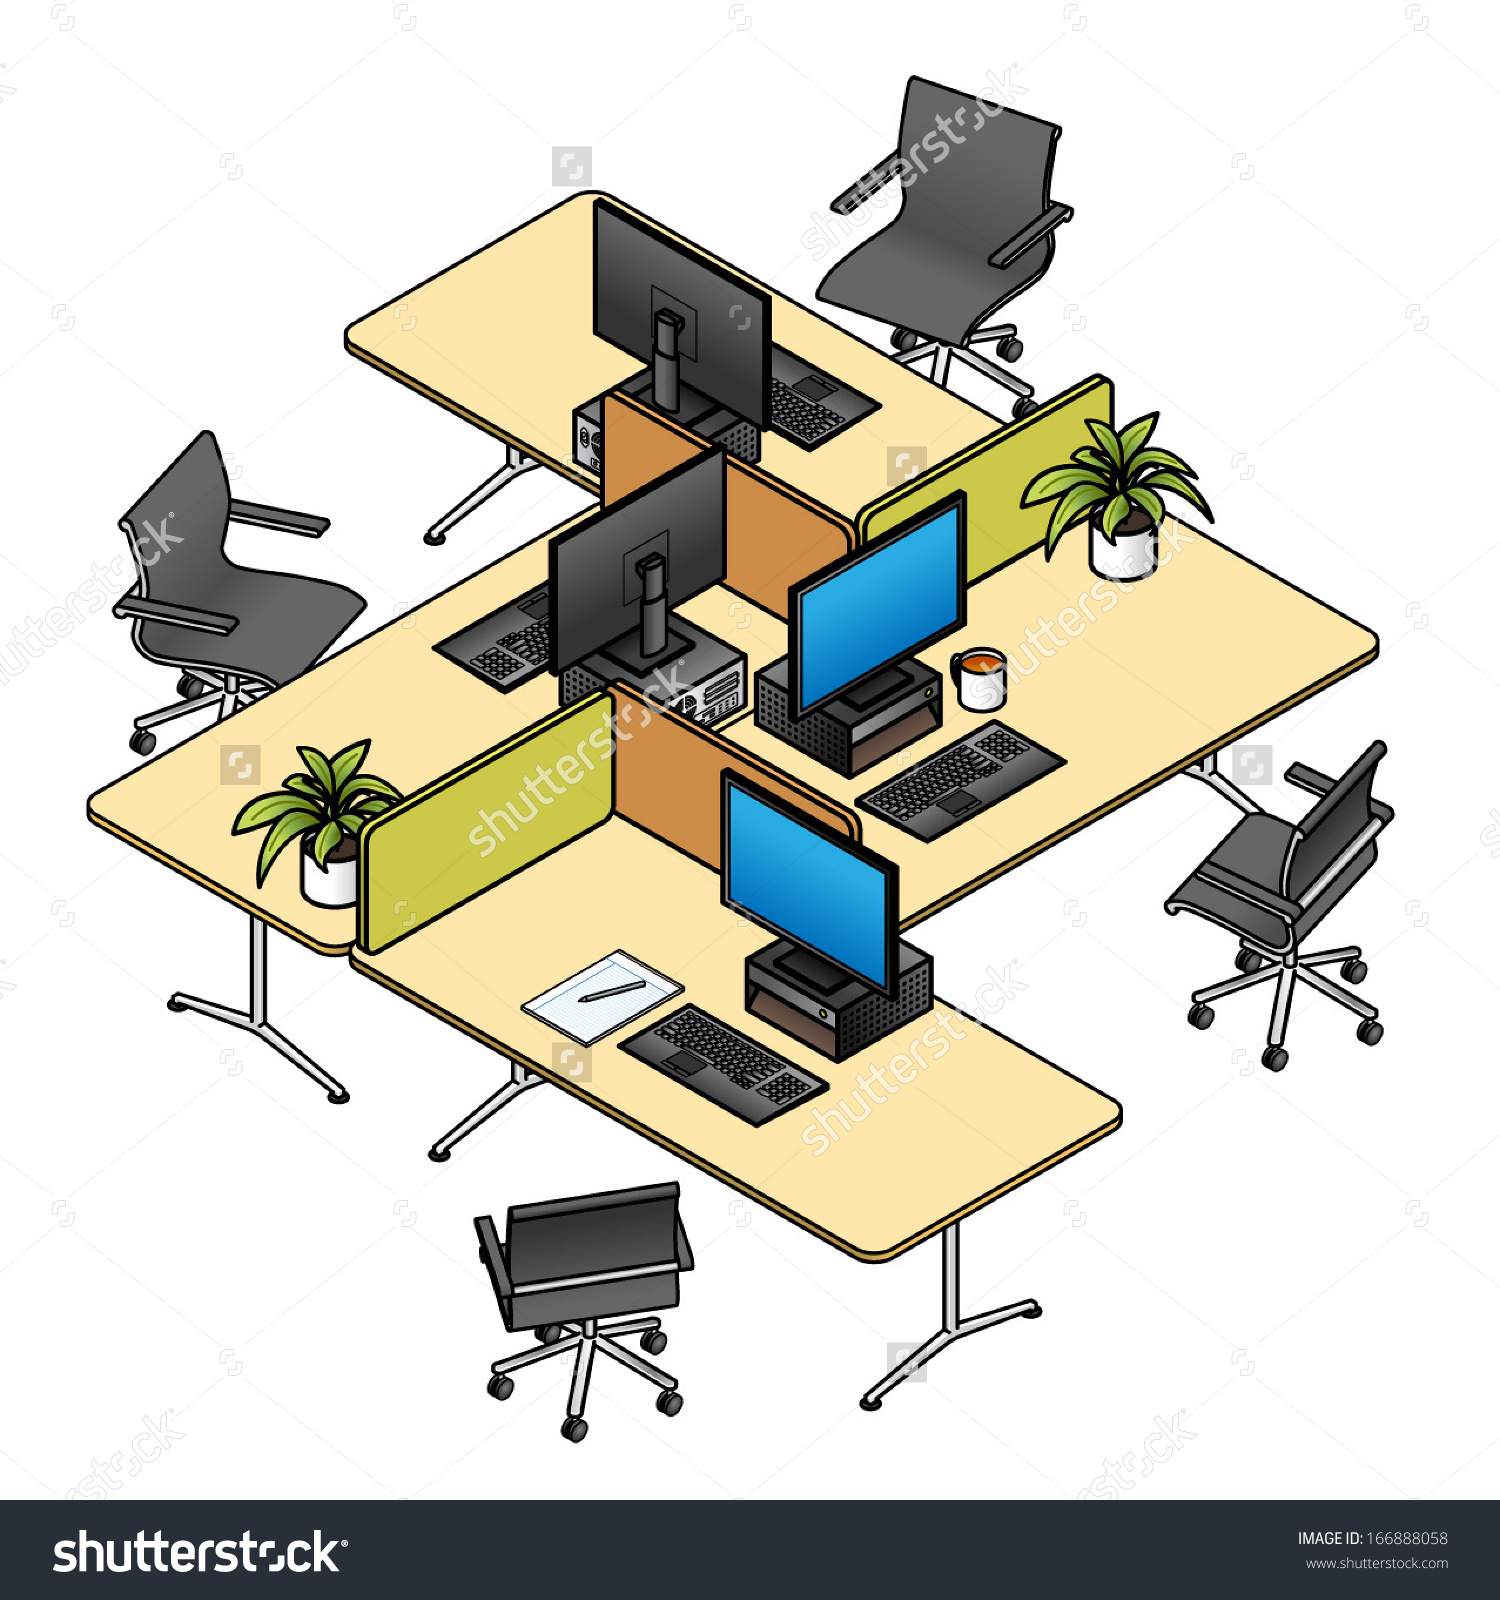 Office furniture layout clipart.